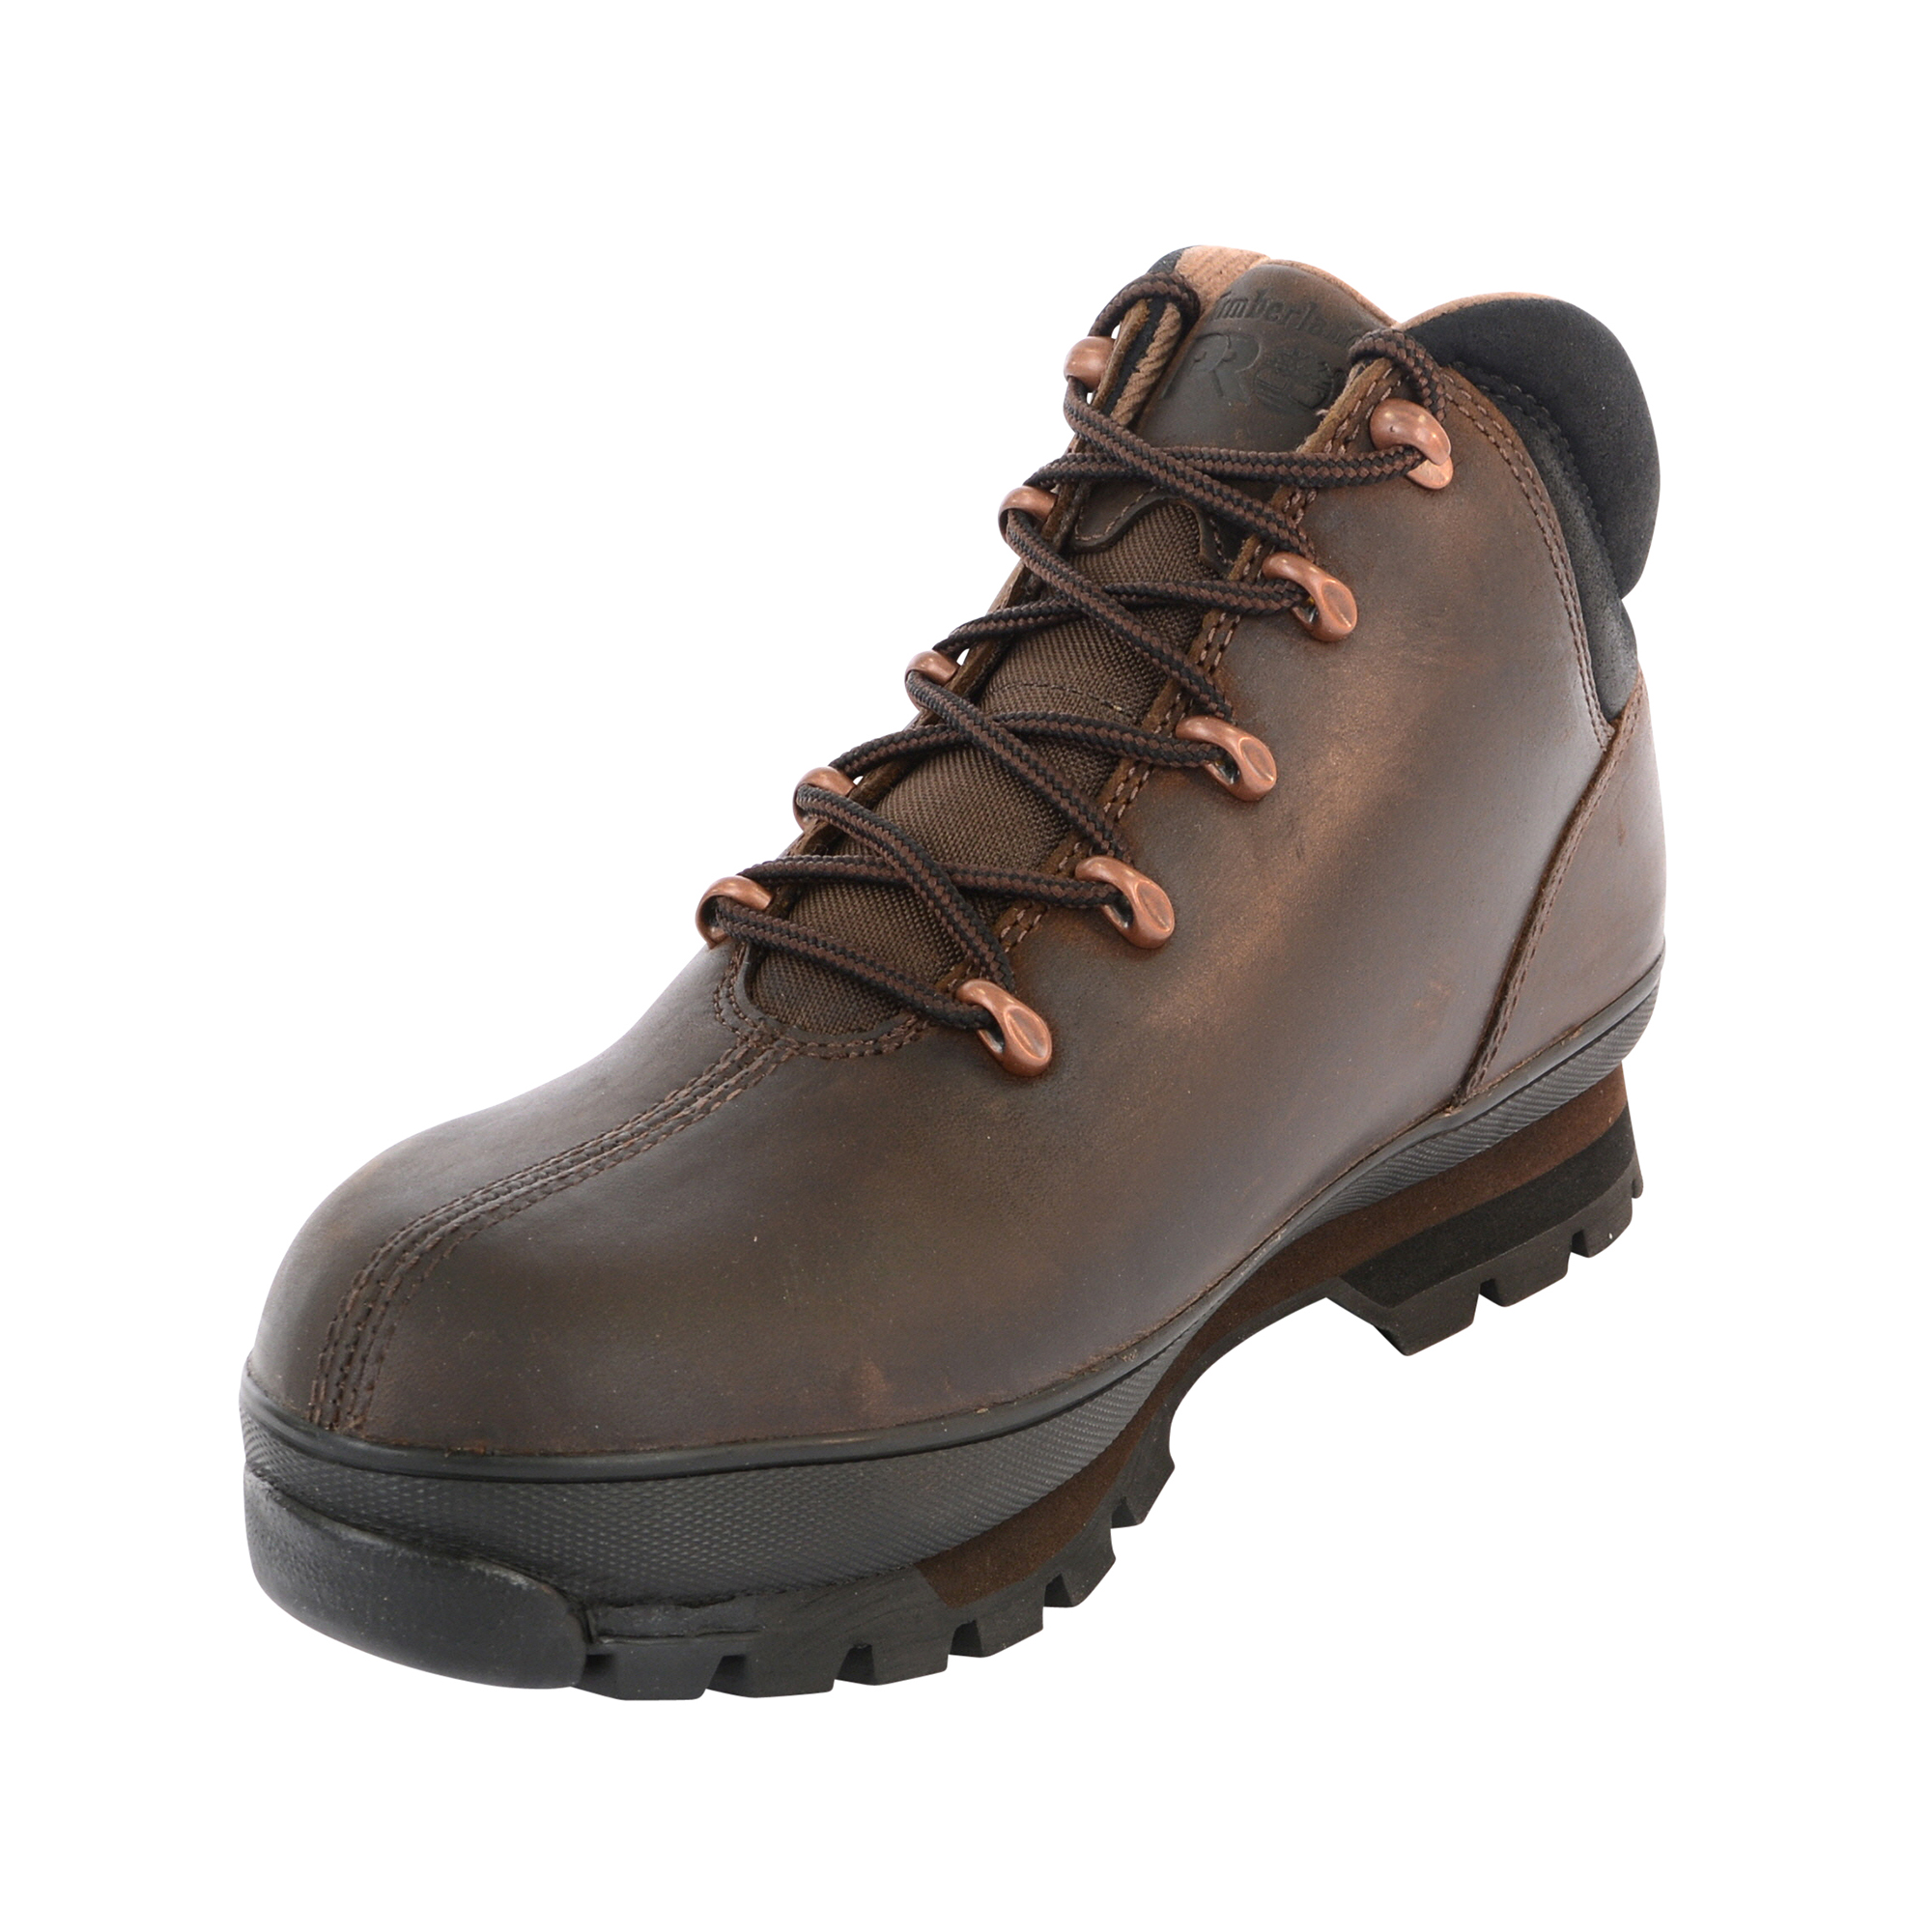 ... Timberland Pro 6201043 Pro Split Rock Safety Boots - Brown Alt Image 1  ... 30a3ddfdeb75